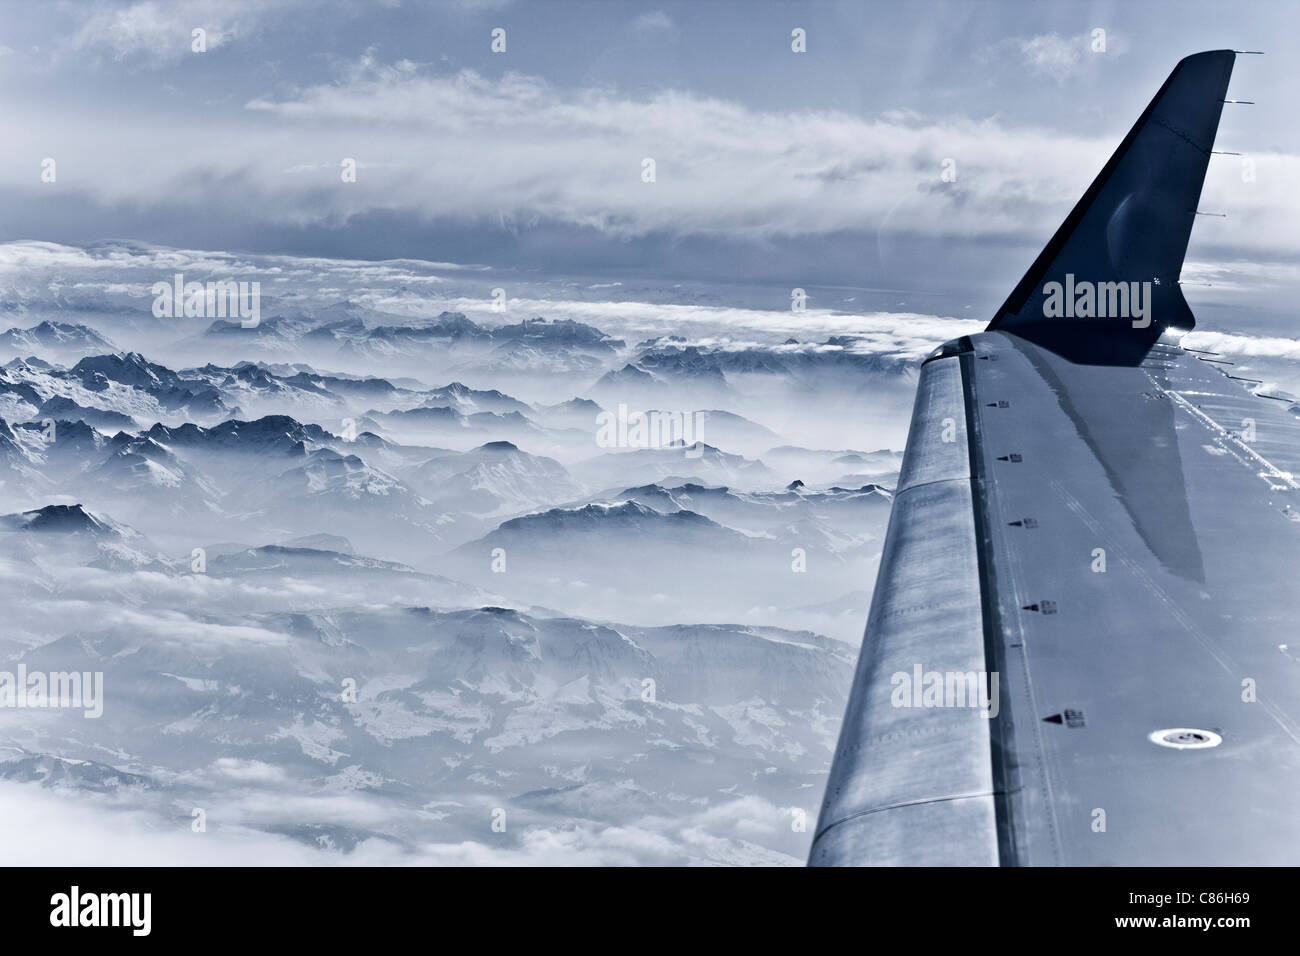 Airplane over snow covered mountains - Stock Image